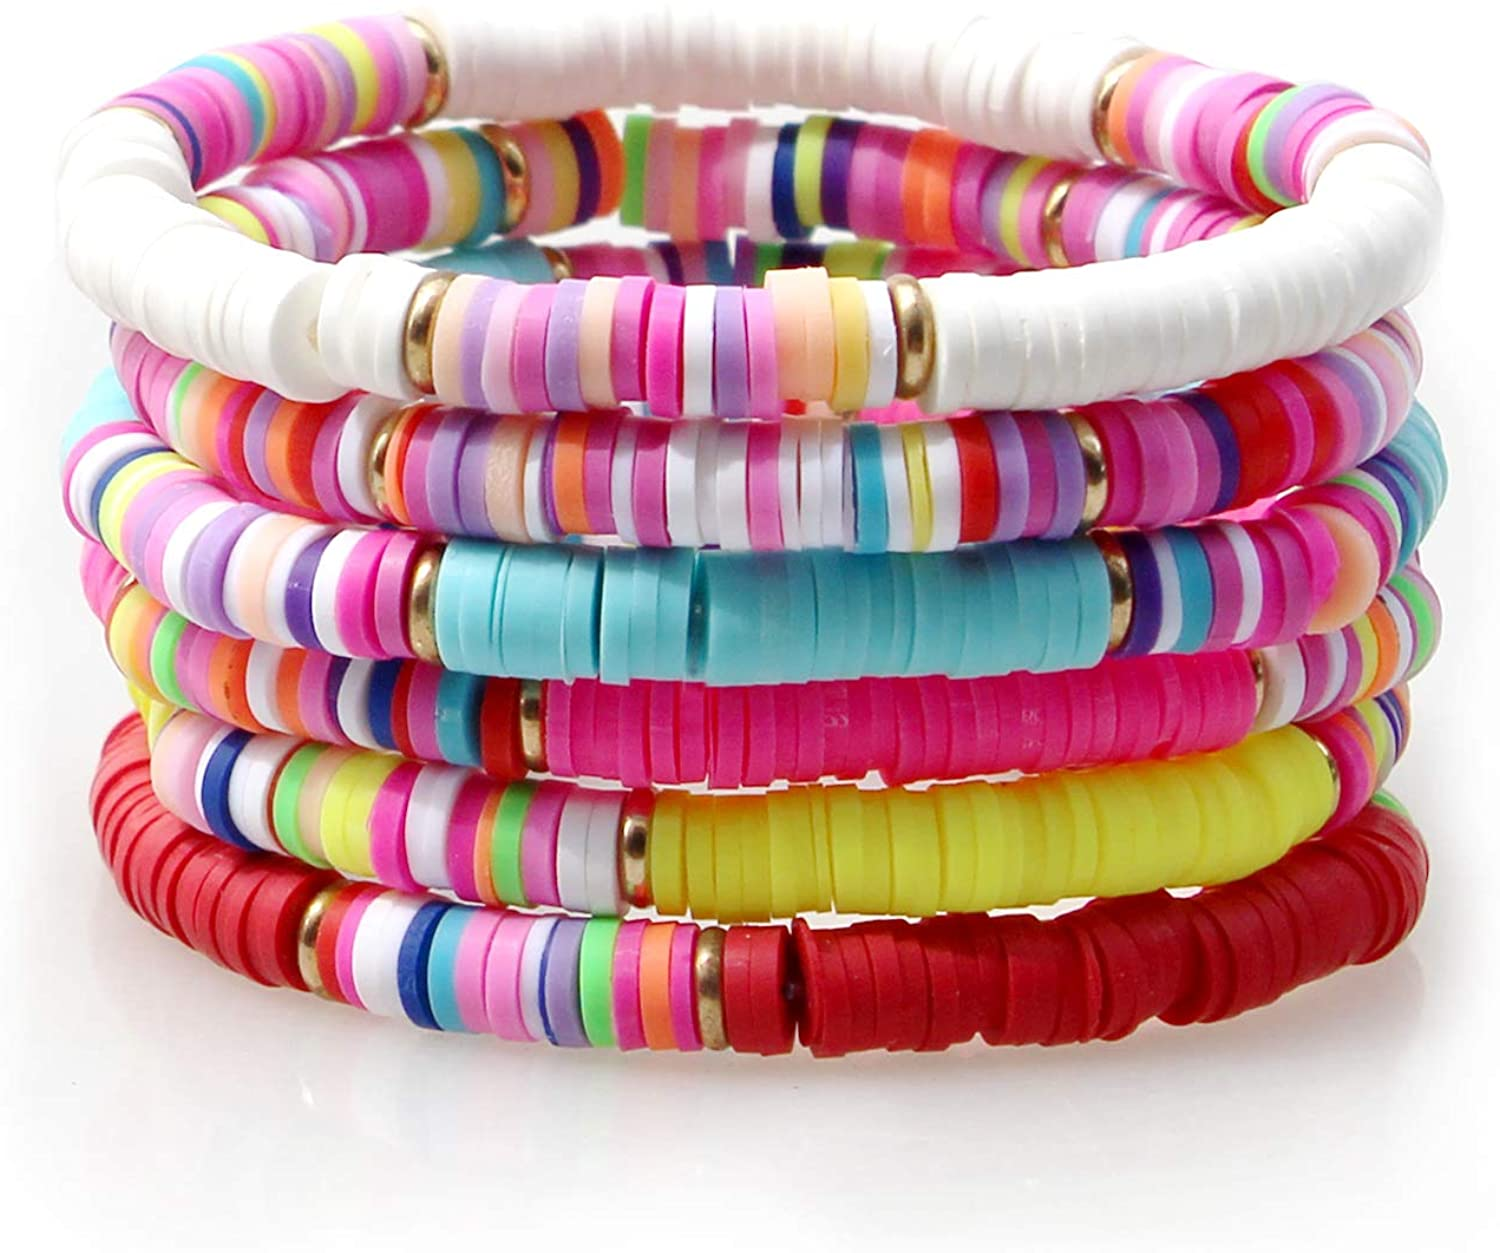 6PCS Summer Beach Boho Heishi Beads Bracelet Rainbow Surfer Bracelets Polymer Clay Heishi Stretch Bracelet for Women Girl Kids